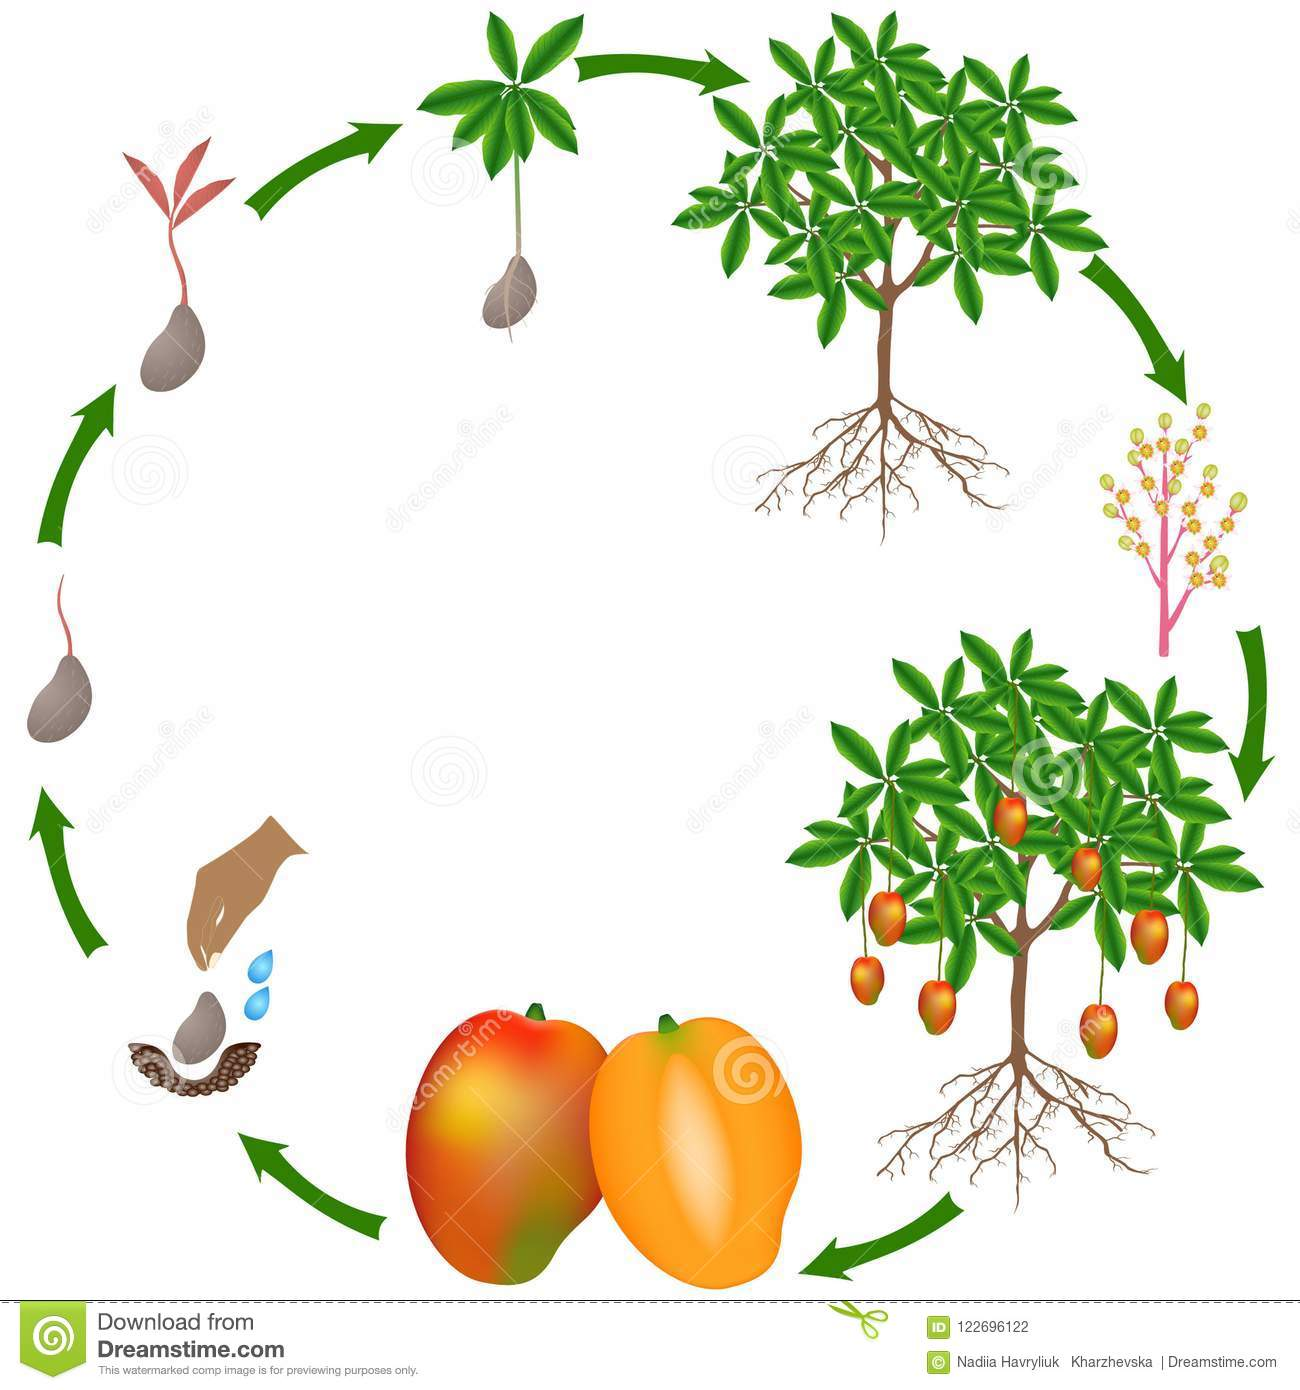 Ixk Ylip moreover Free Farm Vector furthermore Life Cycle Mango Plant White Background Life Cycle Mango Plant White Background Beautiful Illustration additionally Nelumbo Nucifera Blanco Original moreover Sunflower Life Cycle Growth Stages Seed To Flowering Fruit Bearing Plant Root System Sunflower Life Cycle Growth. on free plant life cycle clipart